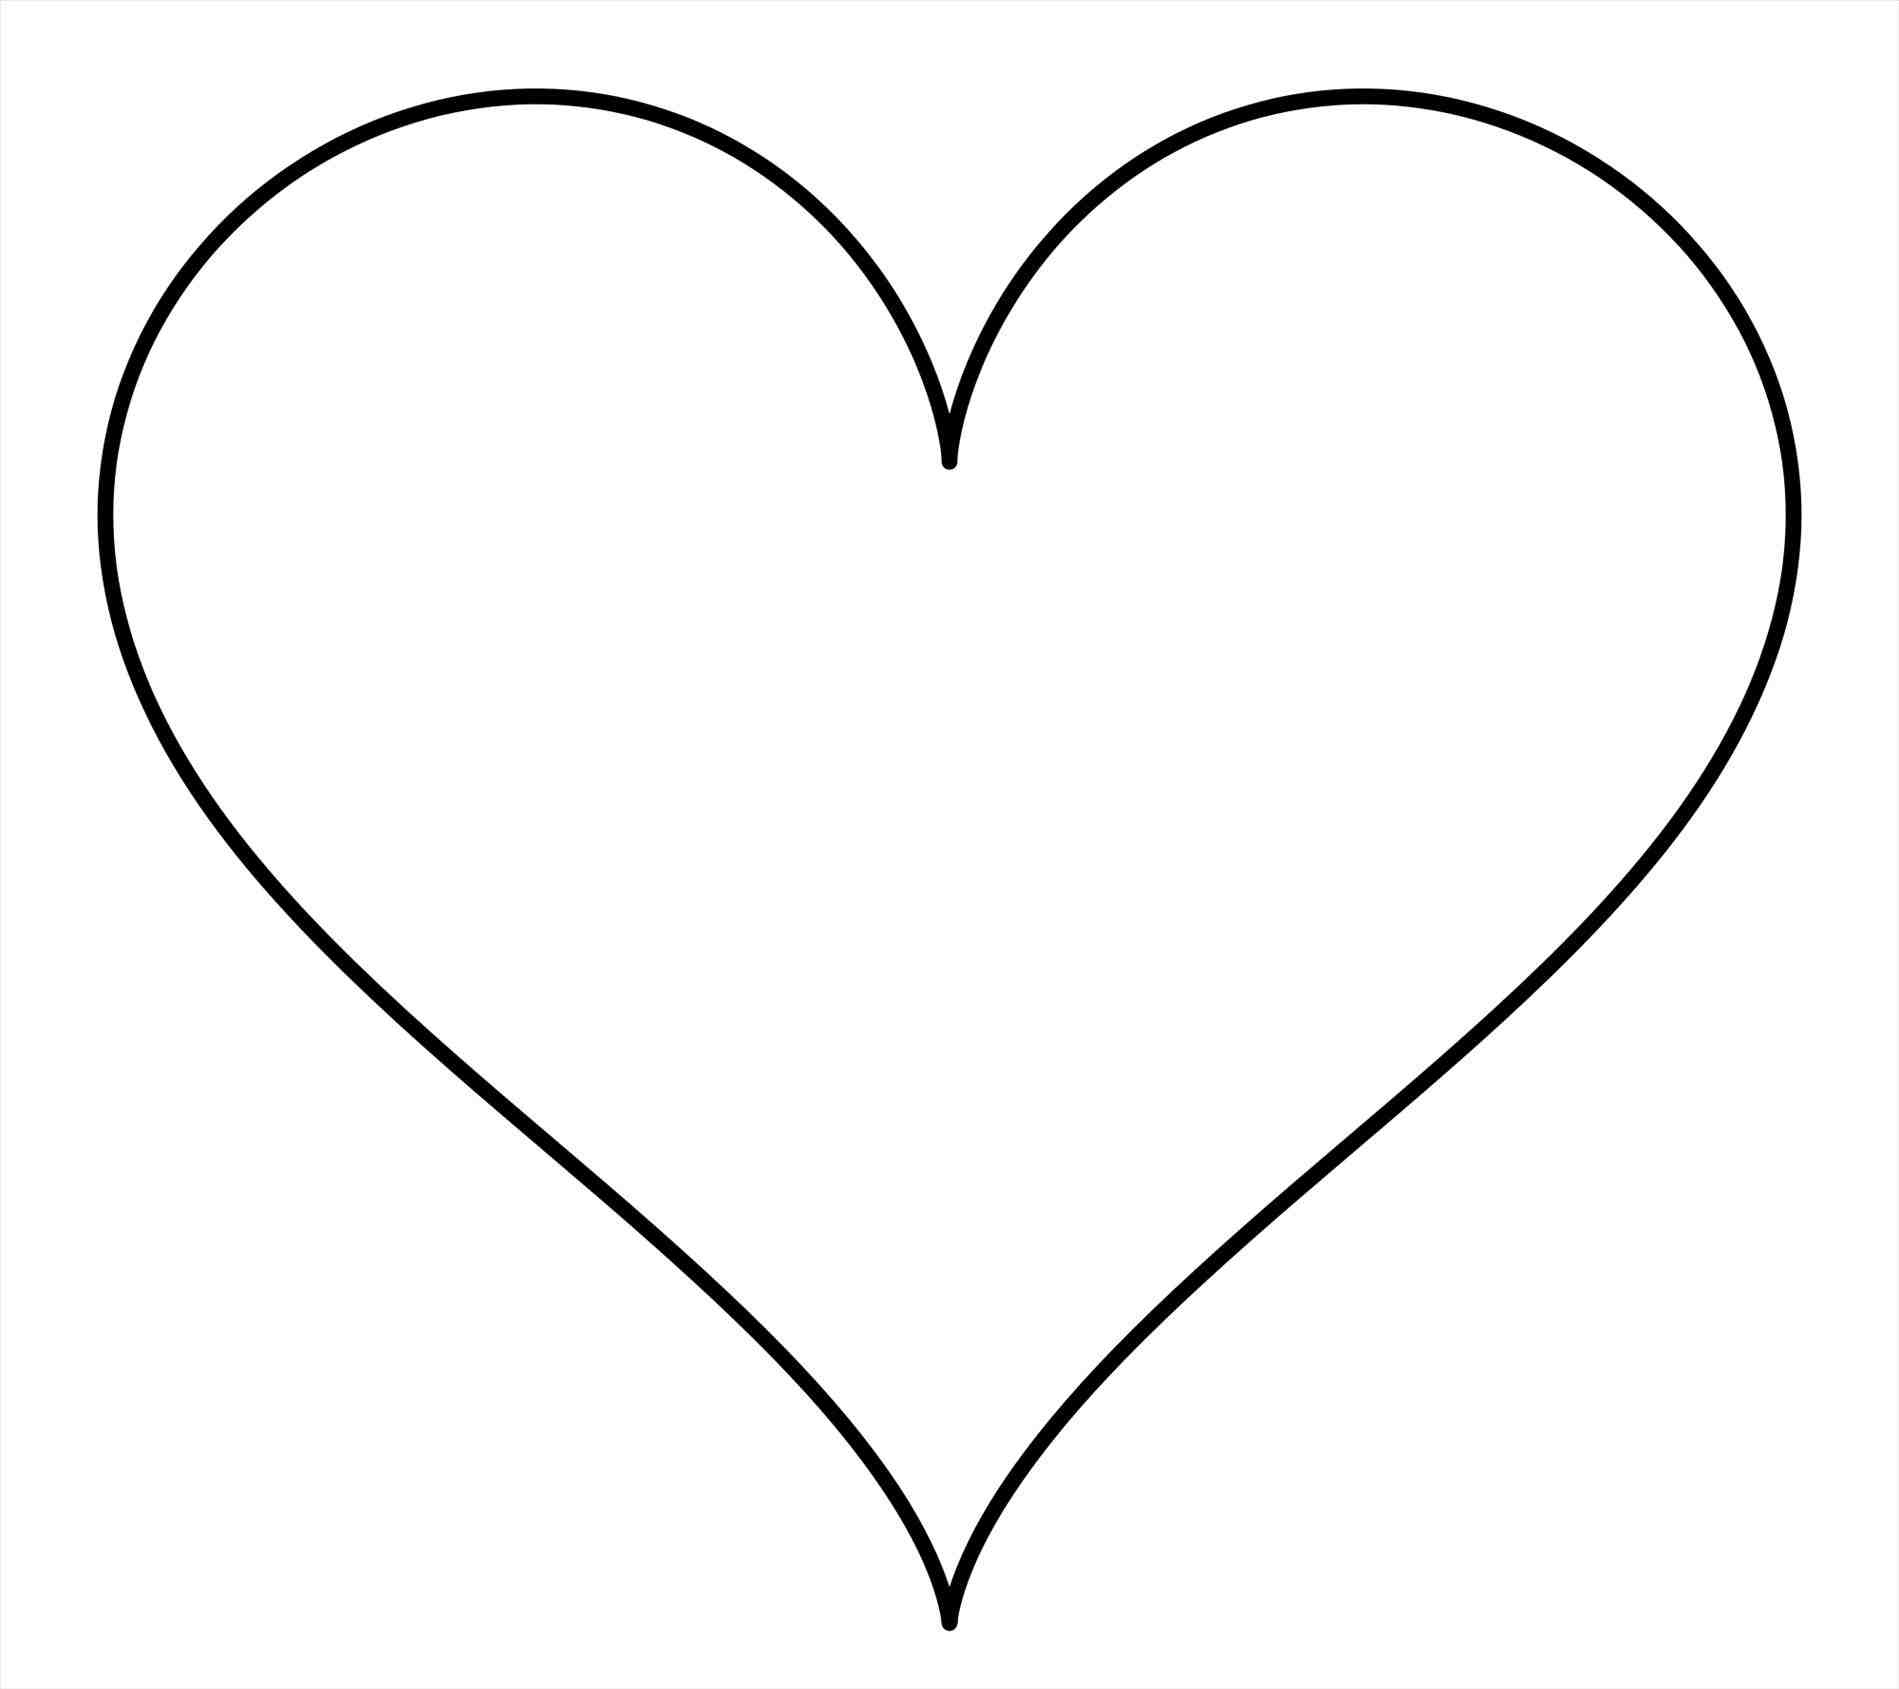 Pictures of heart drawings free download jpg